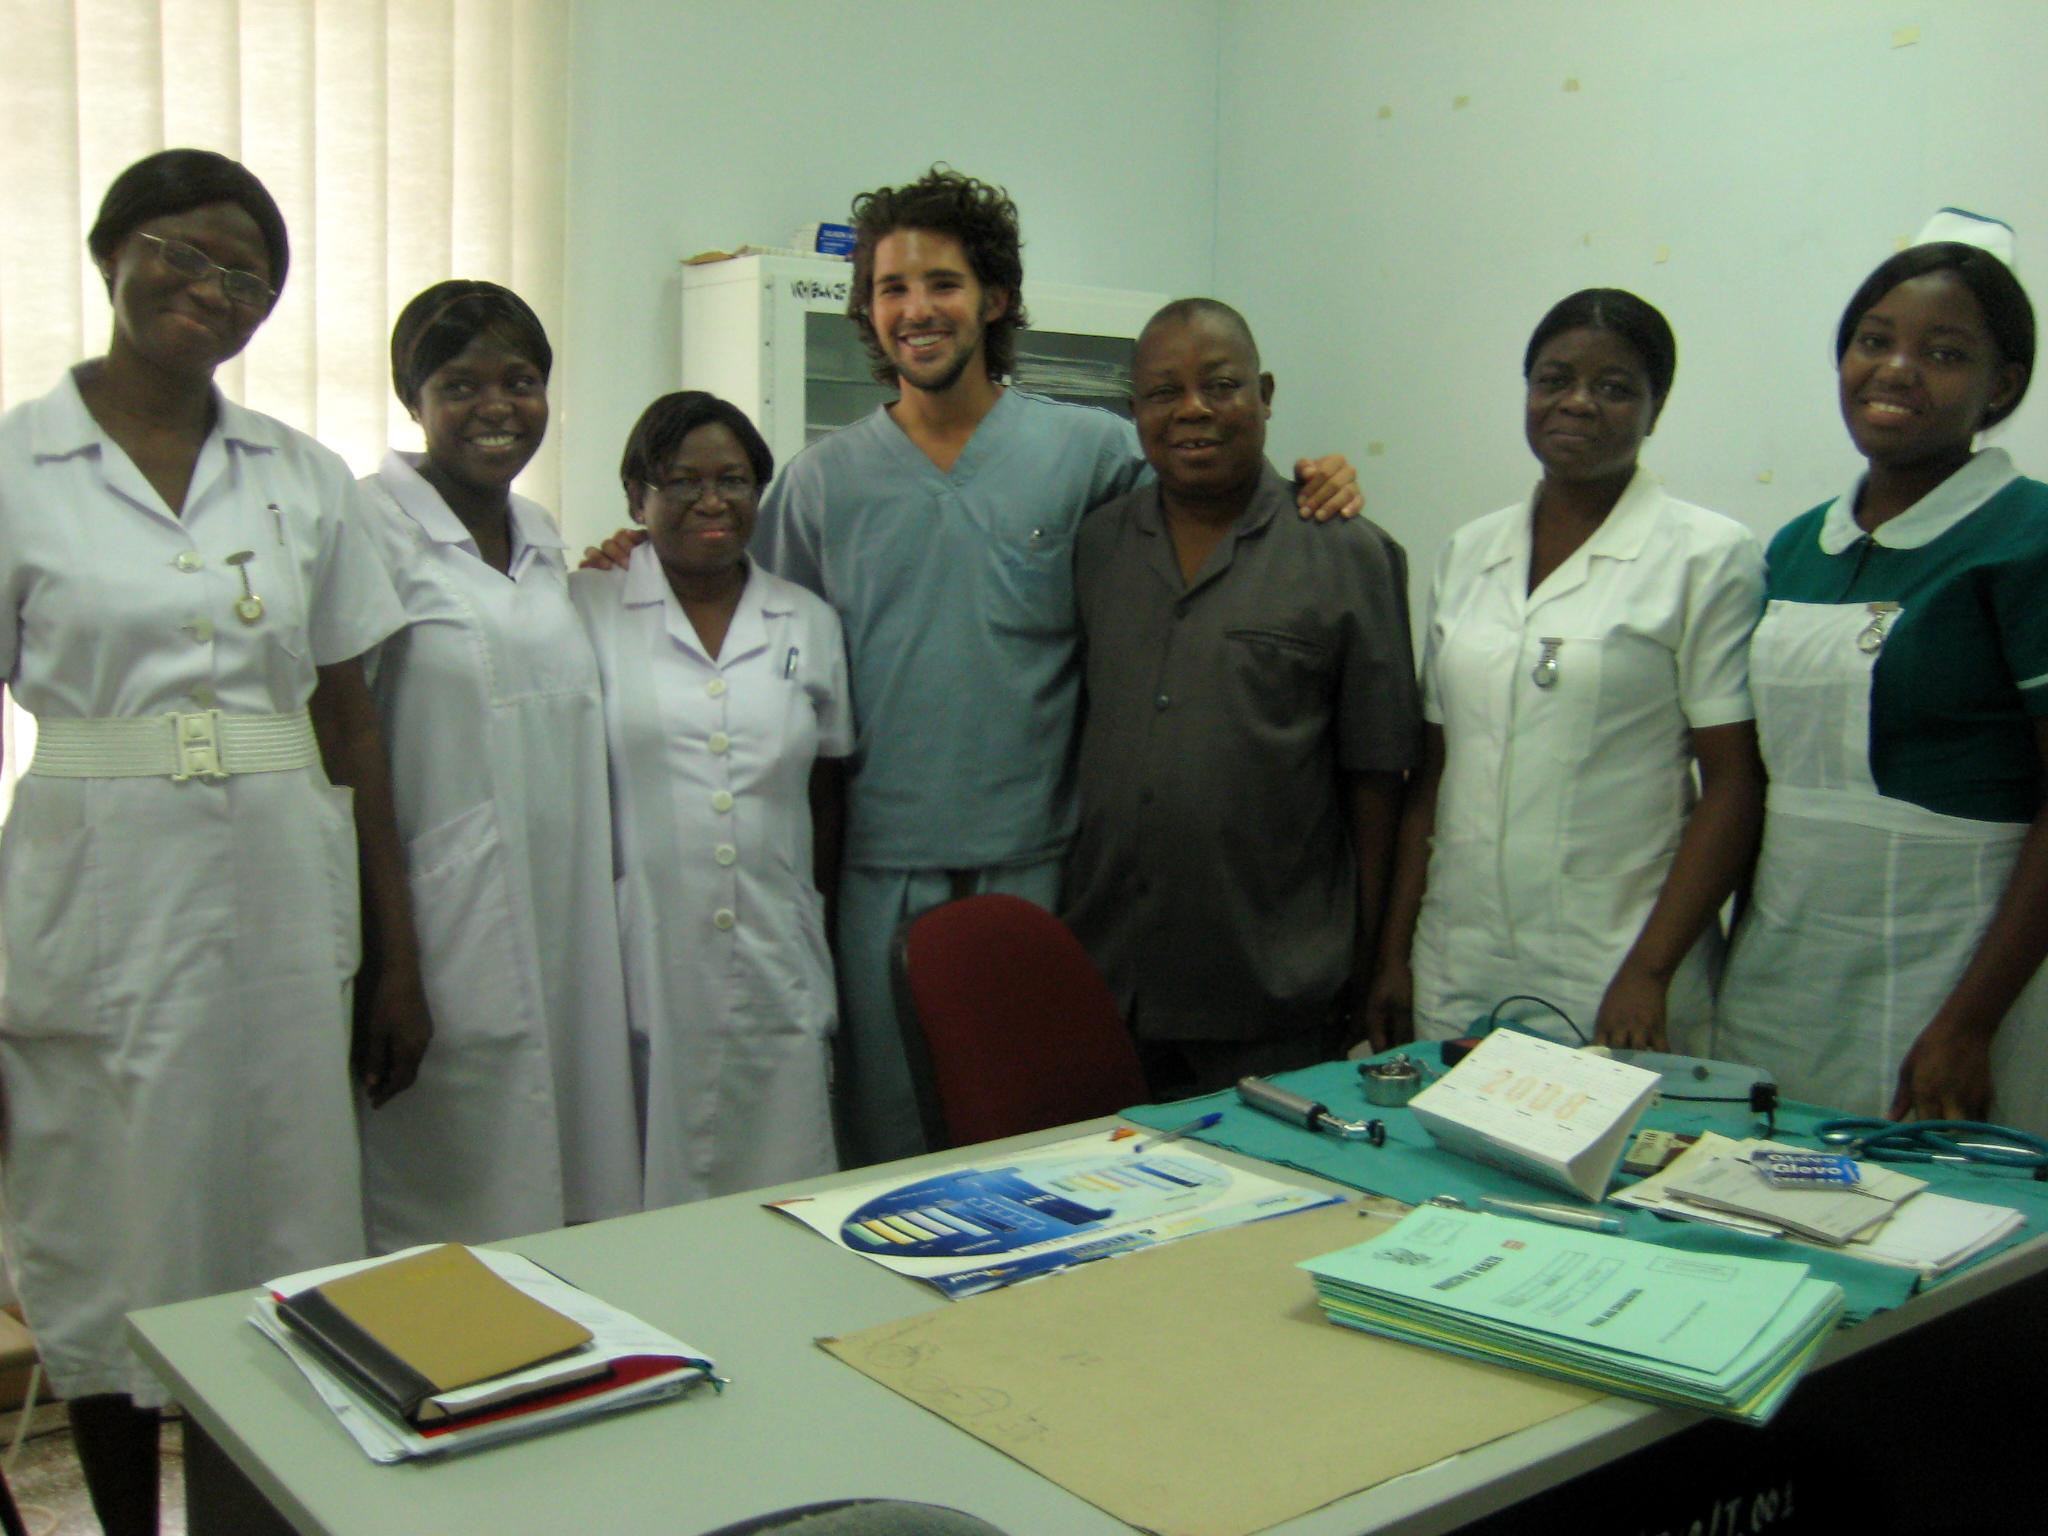 A few interns pose with local doctors and nurses at the end of their pharmacy internship in Ghana with Projects Abroad.